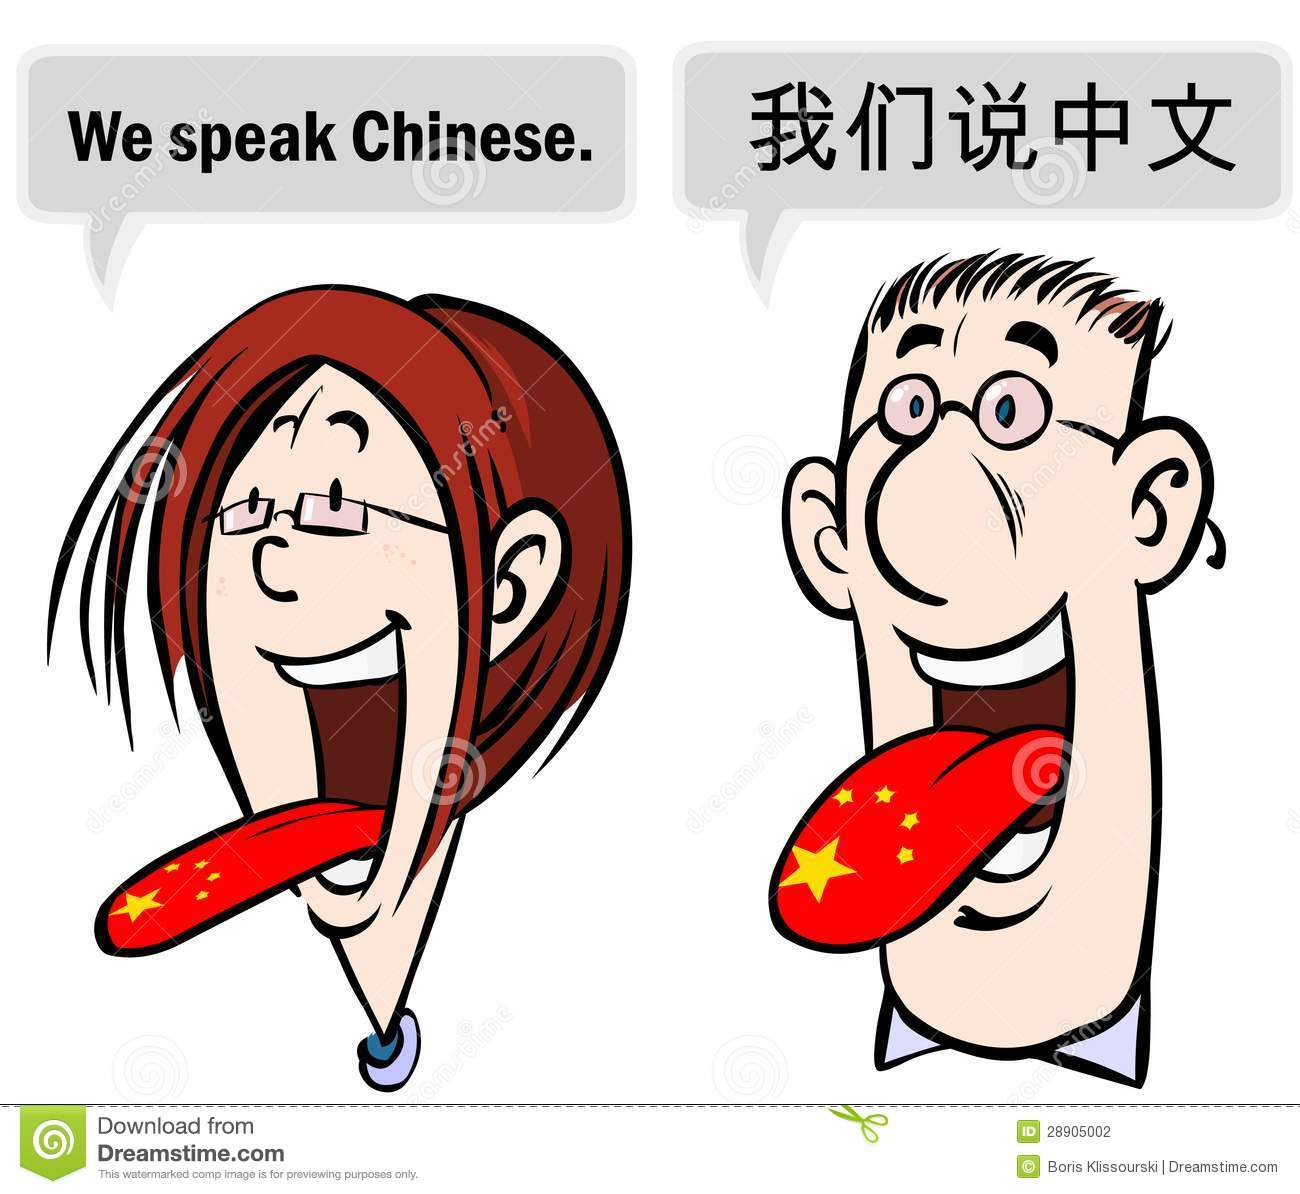 Cartoon illustration of woman and man speaking Chinese.